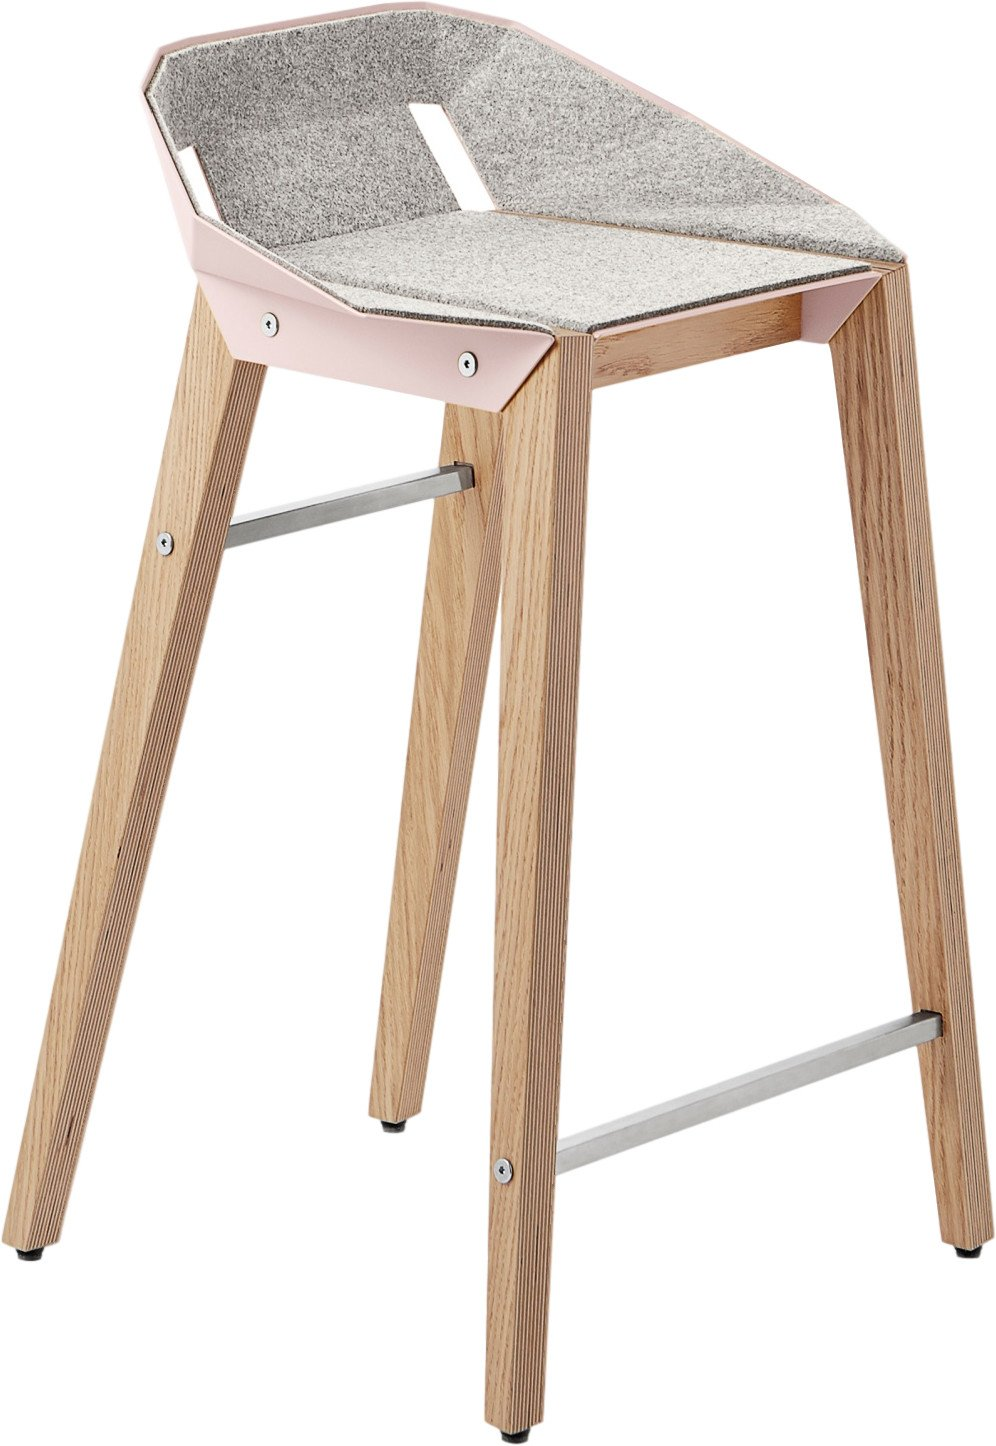 Diago Felt Stool Low Pink, Tabanda, Poland